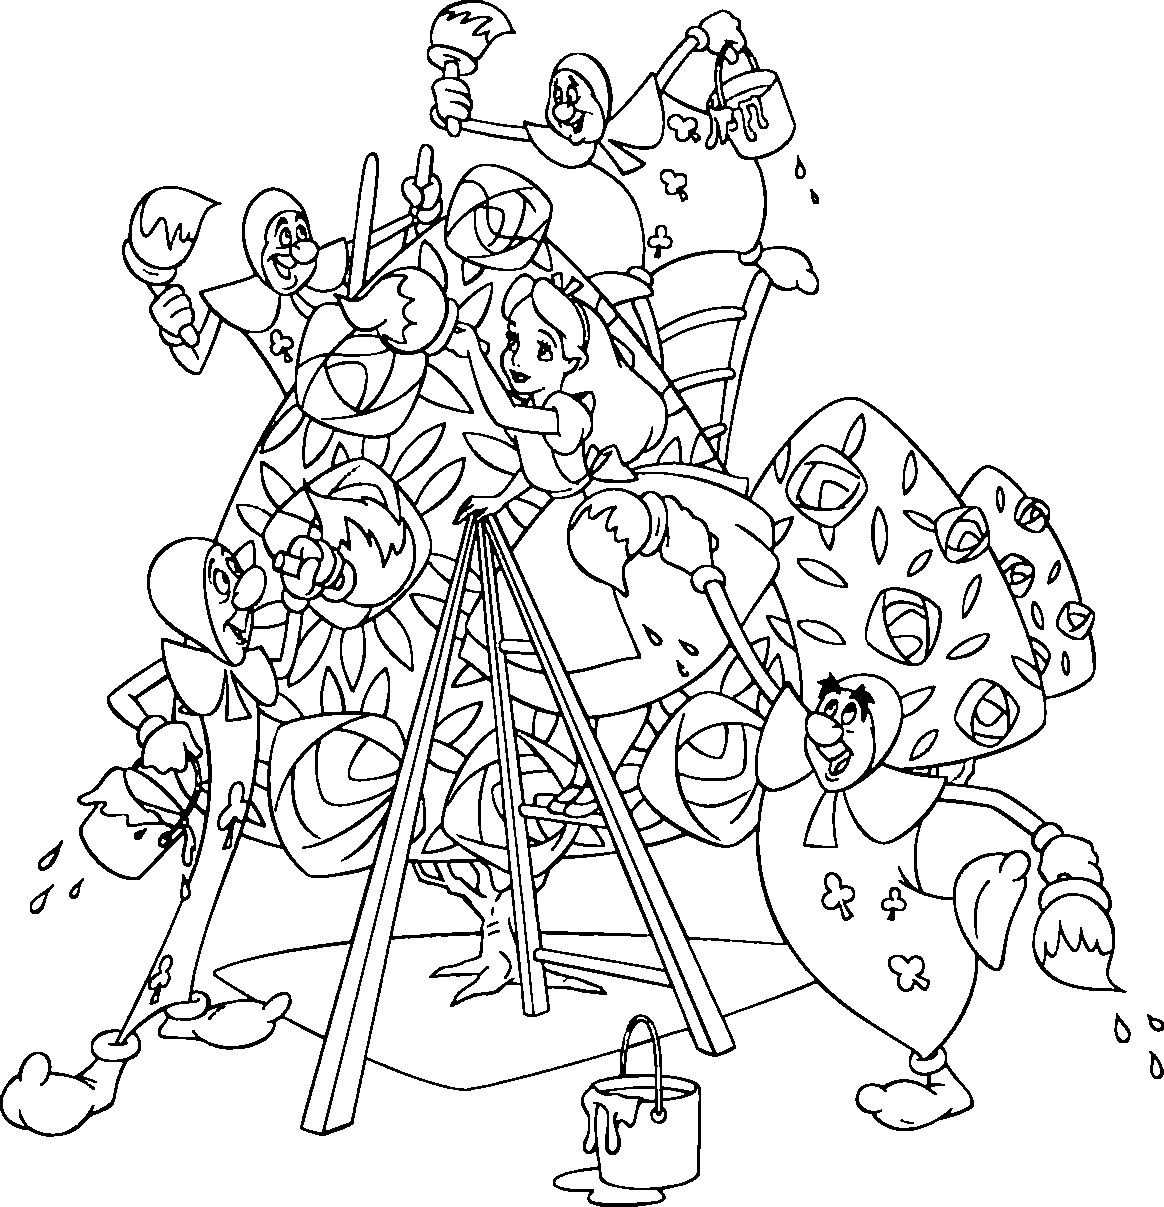 Free Printable Alice in Wonderland Coloring Pages For Kids